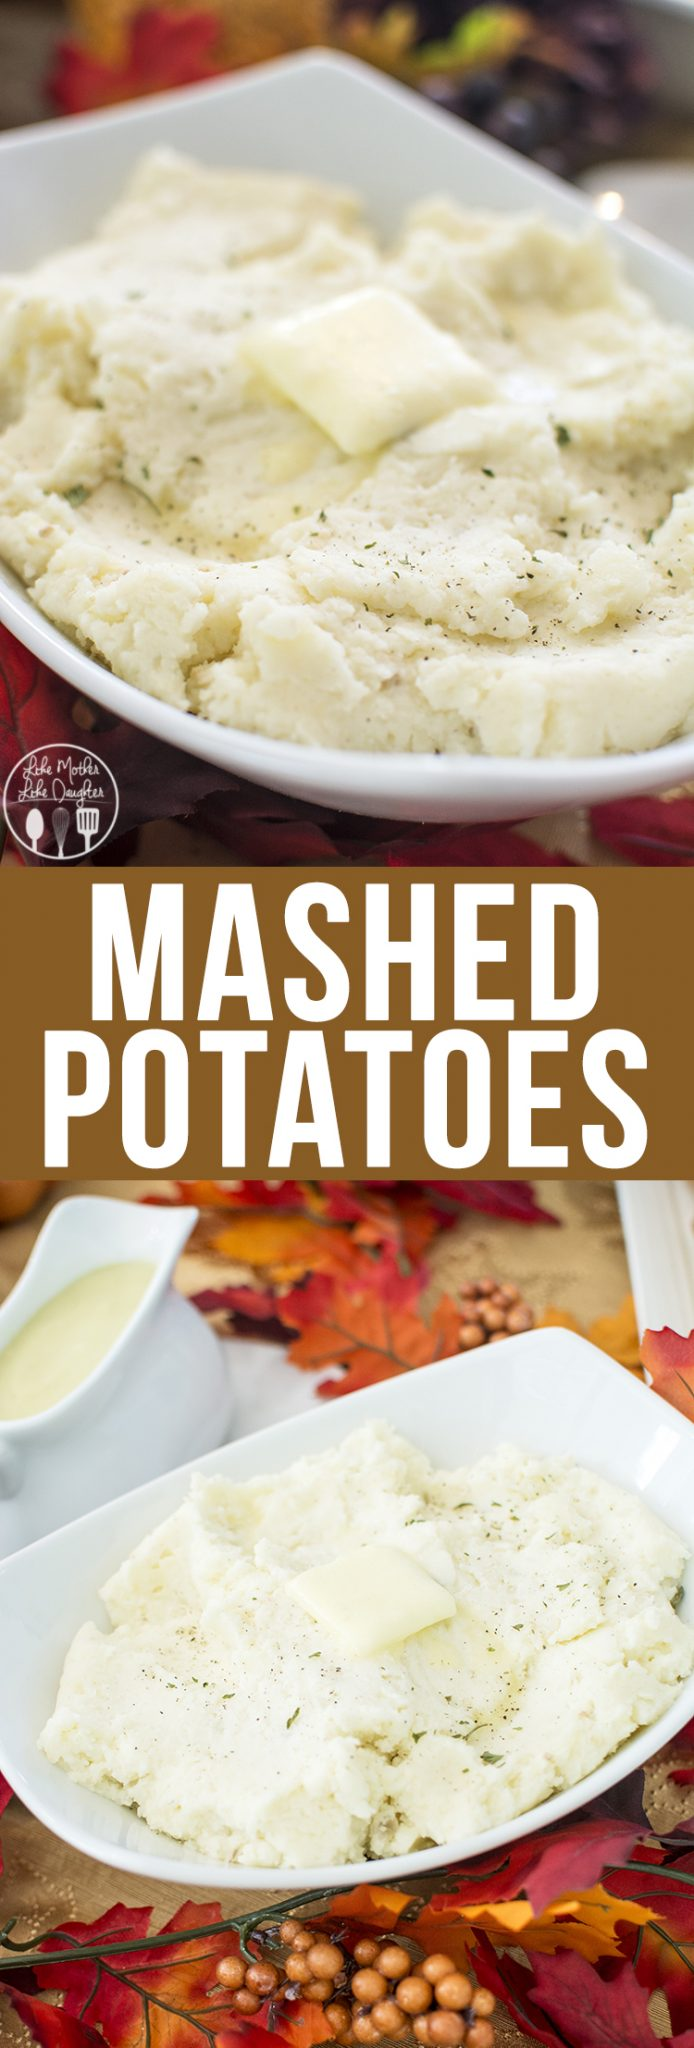 Mashed Potatoes - these mashed potatoes have great flavor, great texture and would make a perfect side dish to your Thanksgiving meal!